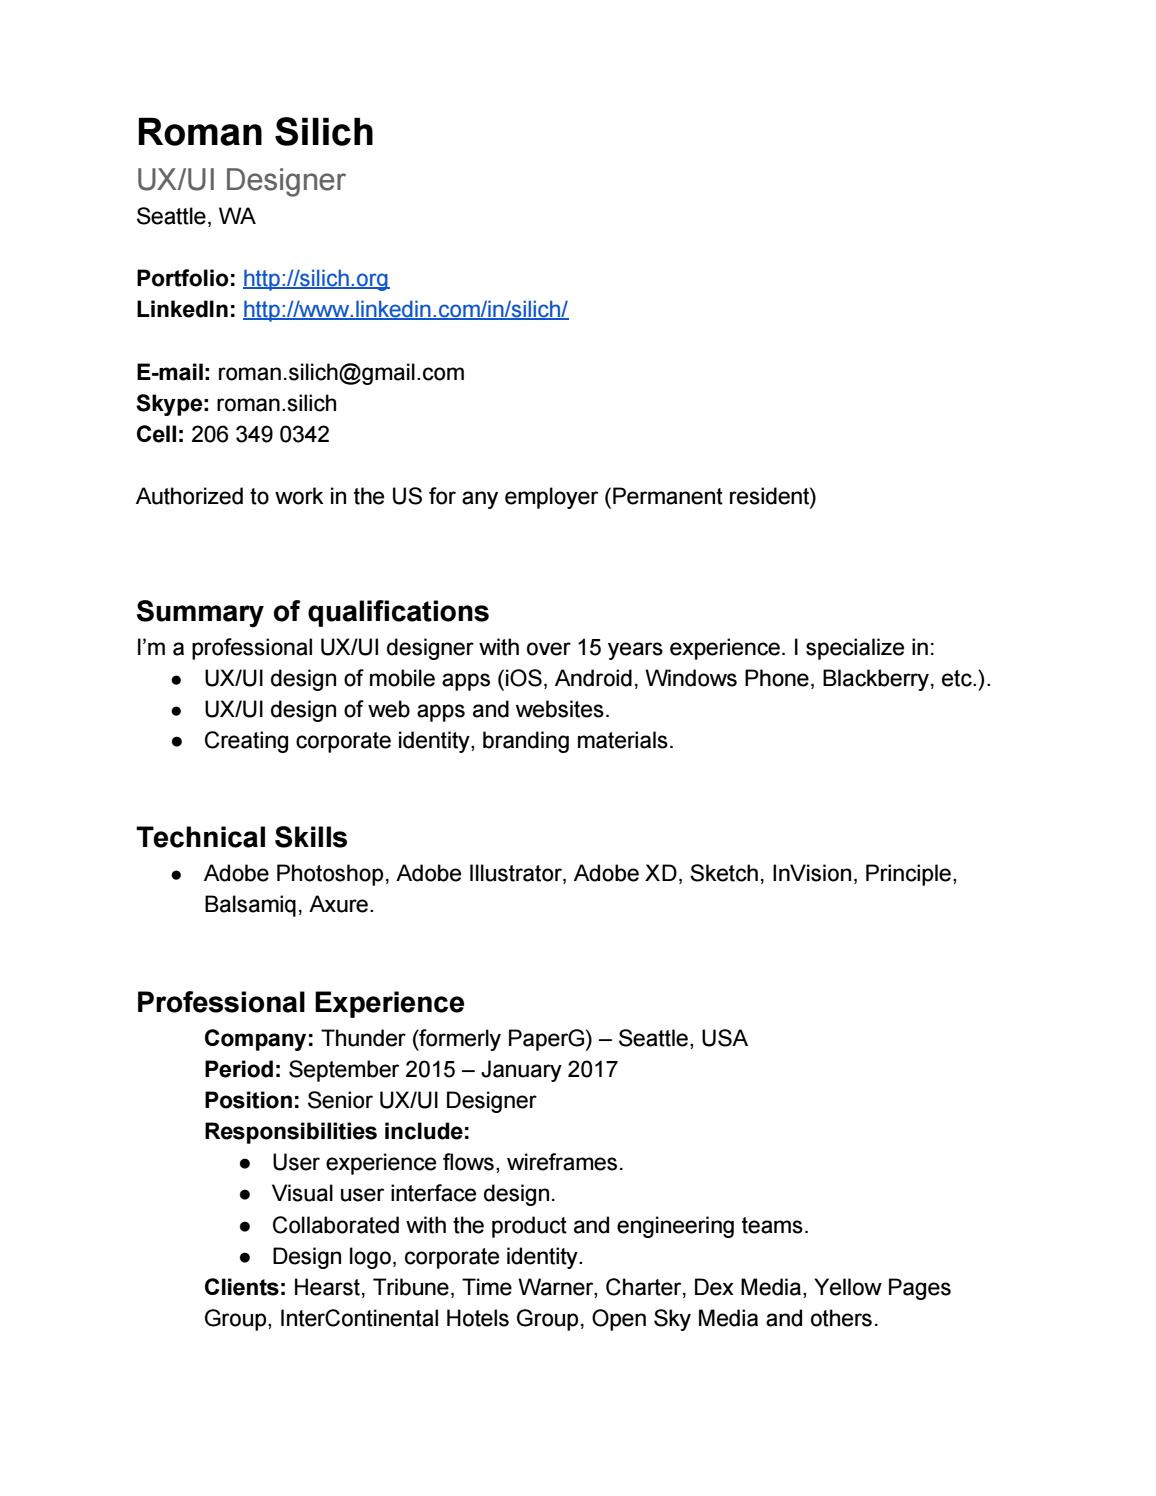 roman siich resume by silich issuu permanent resident downloadable templates education Resume Resume Permanent Resident